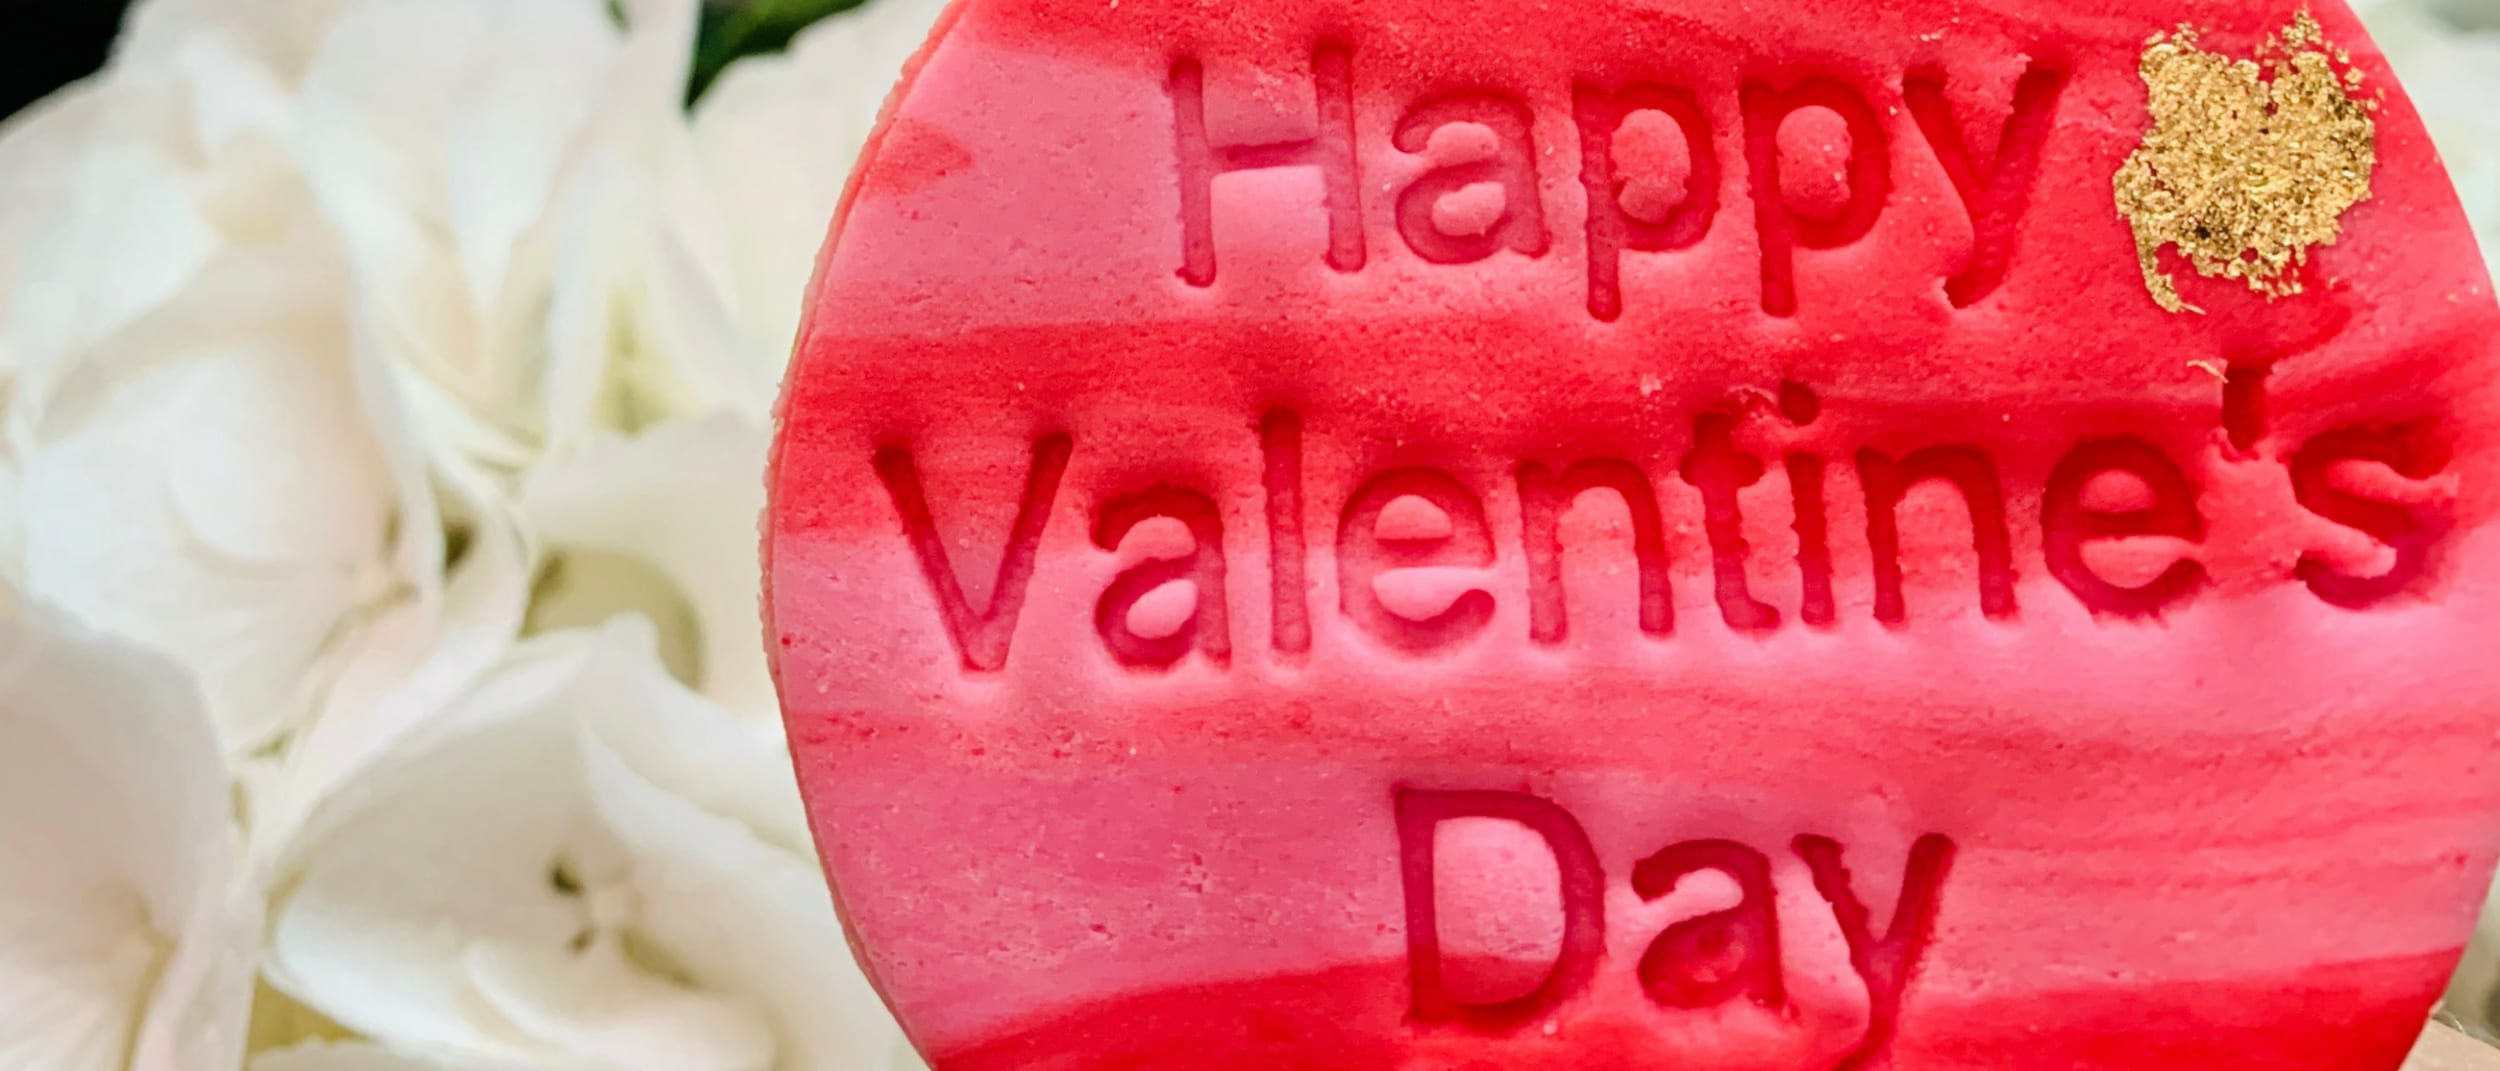 Valentine's Day: Receive a free love cookie